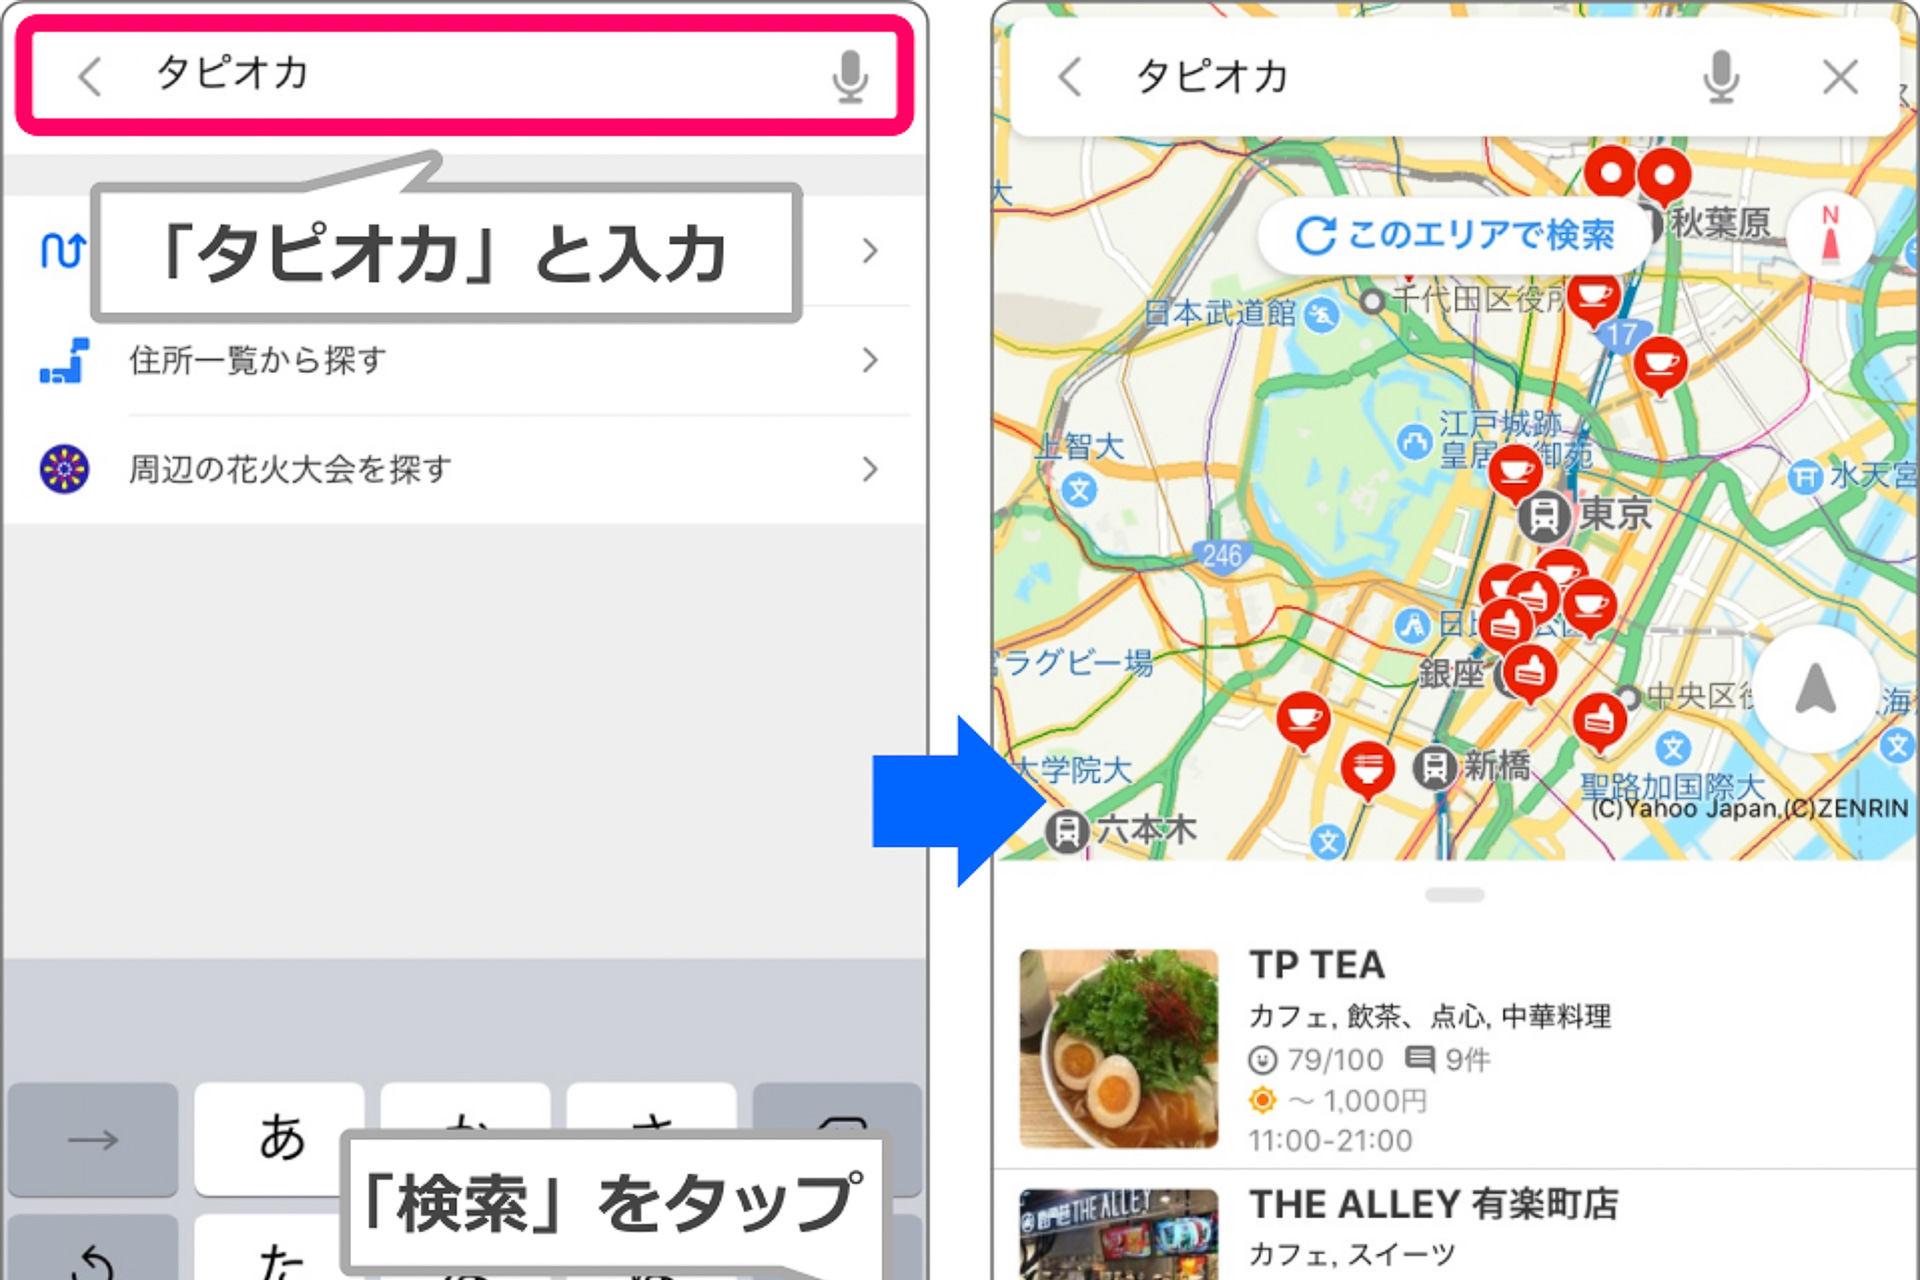 Yahoo! MAP」が「タピオカ検索」に対応。全国800店舗以上のタピオカ専門 on cia world factbook maps, apple maps, windows maps, goodle maps, microsoft maps, usa today maps, nokia maps, mapquest maps, gulliver's travels maps, bloomberg maps, zillow maps, live maps, rim maps, bing maps, trade show maps, msn maps, google maps, expedia maps, brazil maps,